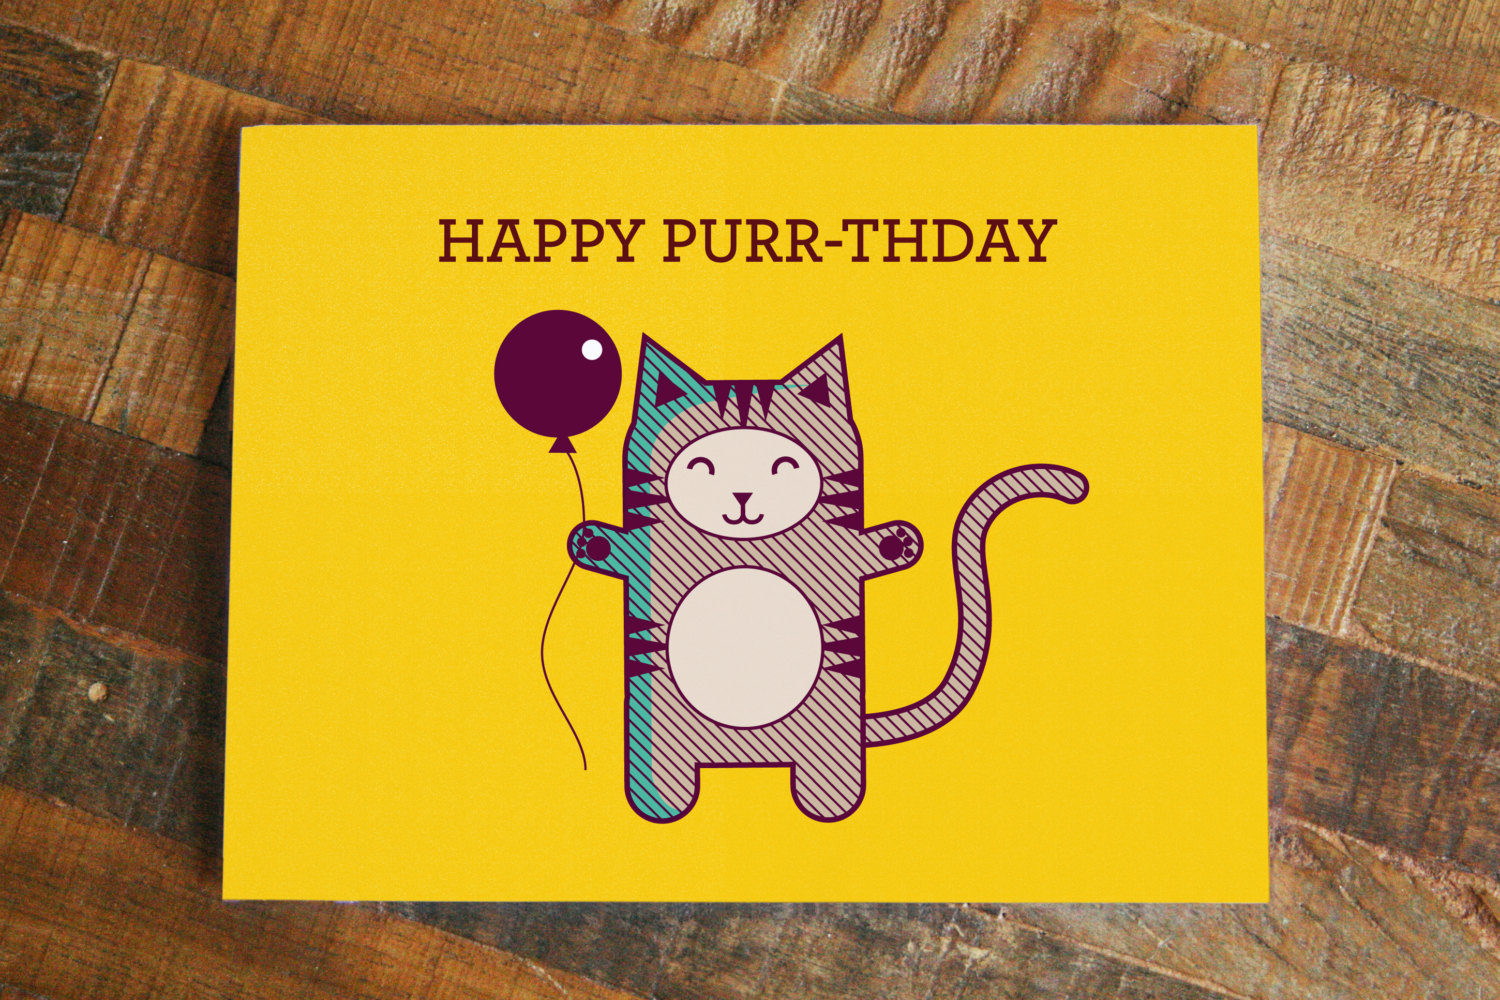 Cat pun birthday card happy purr thday funny card cute cat card il fullxfull609649047 k8jy original bookmarktalkfo